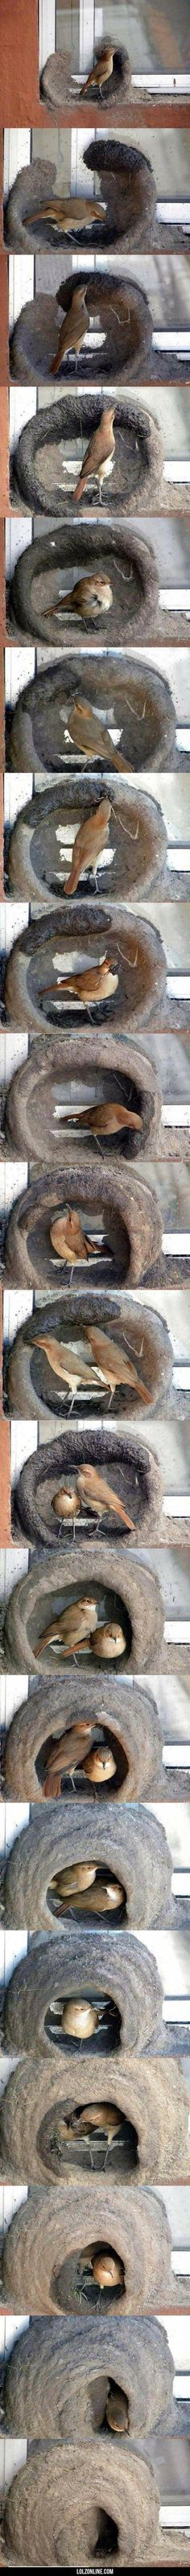 Birds Building A Nest. Can You Guest How Long They Take? #lol #haha #funny